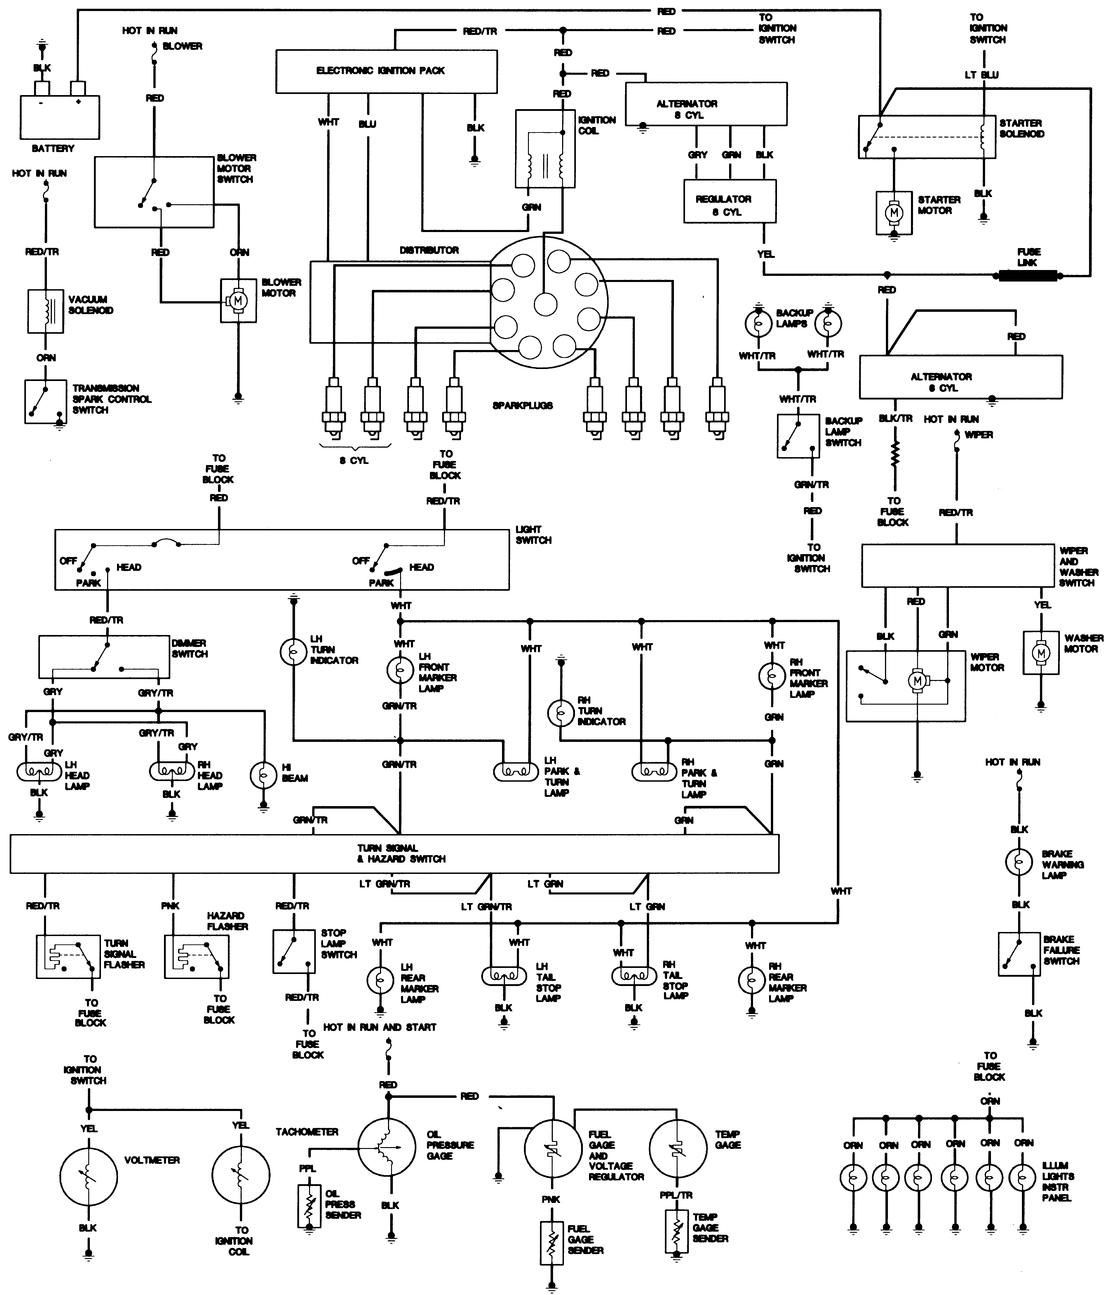 Jeep Cj5 Wiring Another Blog About Diagram Pdf 1980 Furthermore Cj7 Tachometer Rh Pinterest Co Uk Alternator